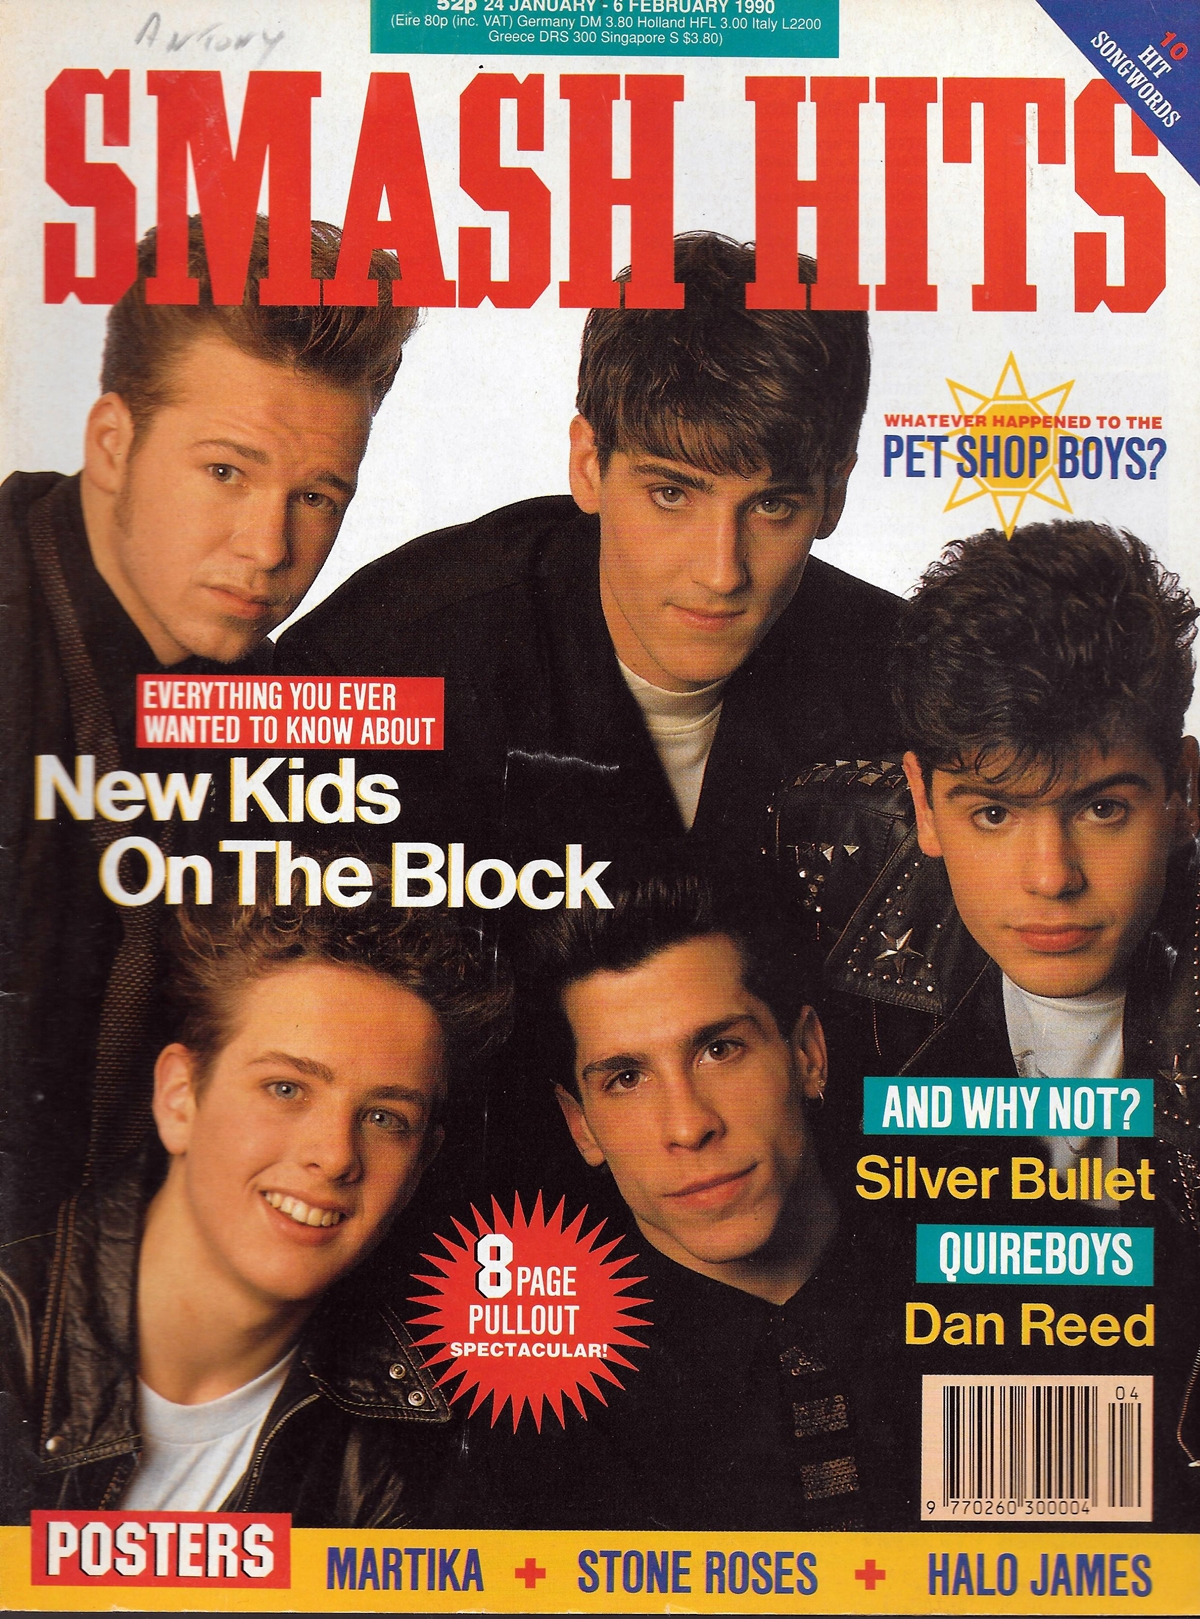 15 1 16 Smash Hits Covers That Will Take You Right Back To Your Youth